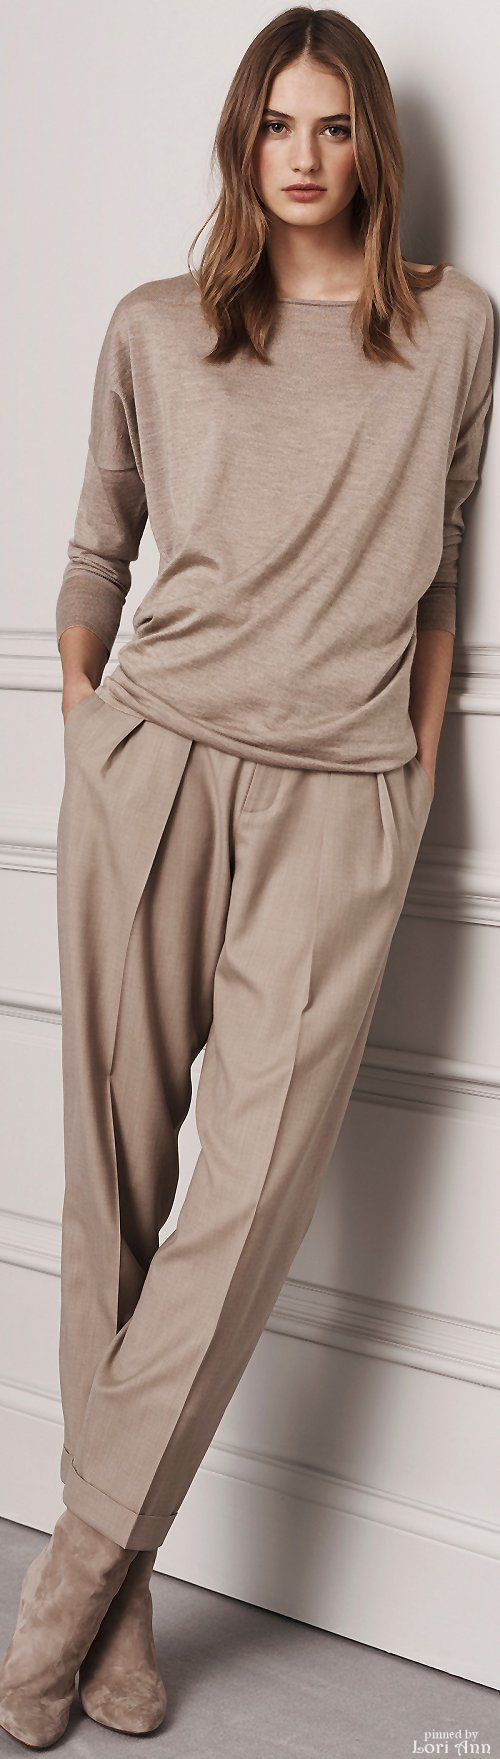 Creative Women39s Apparel Outfits We Love  Banana Republic